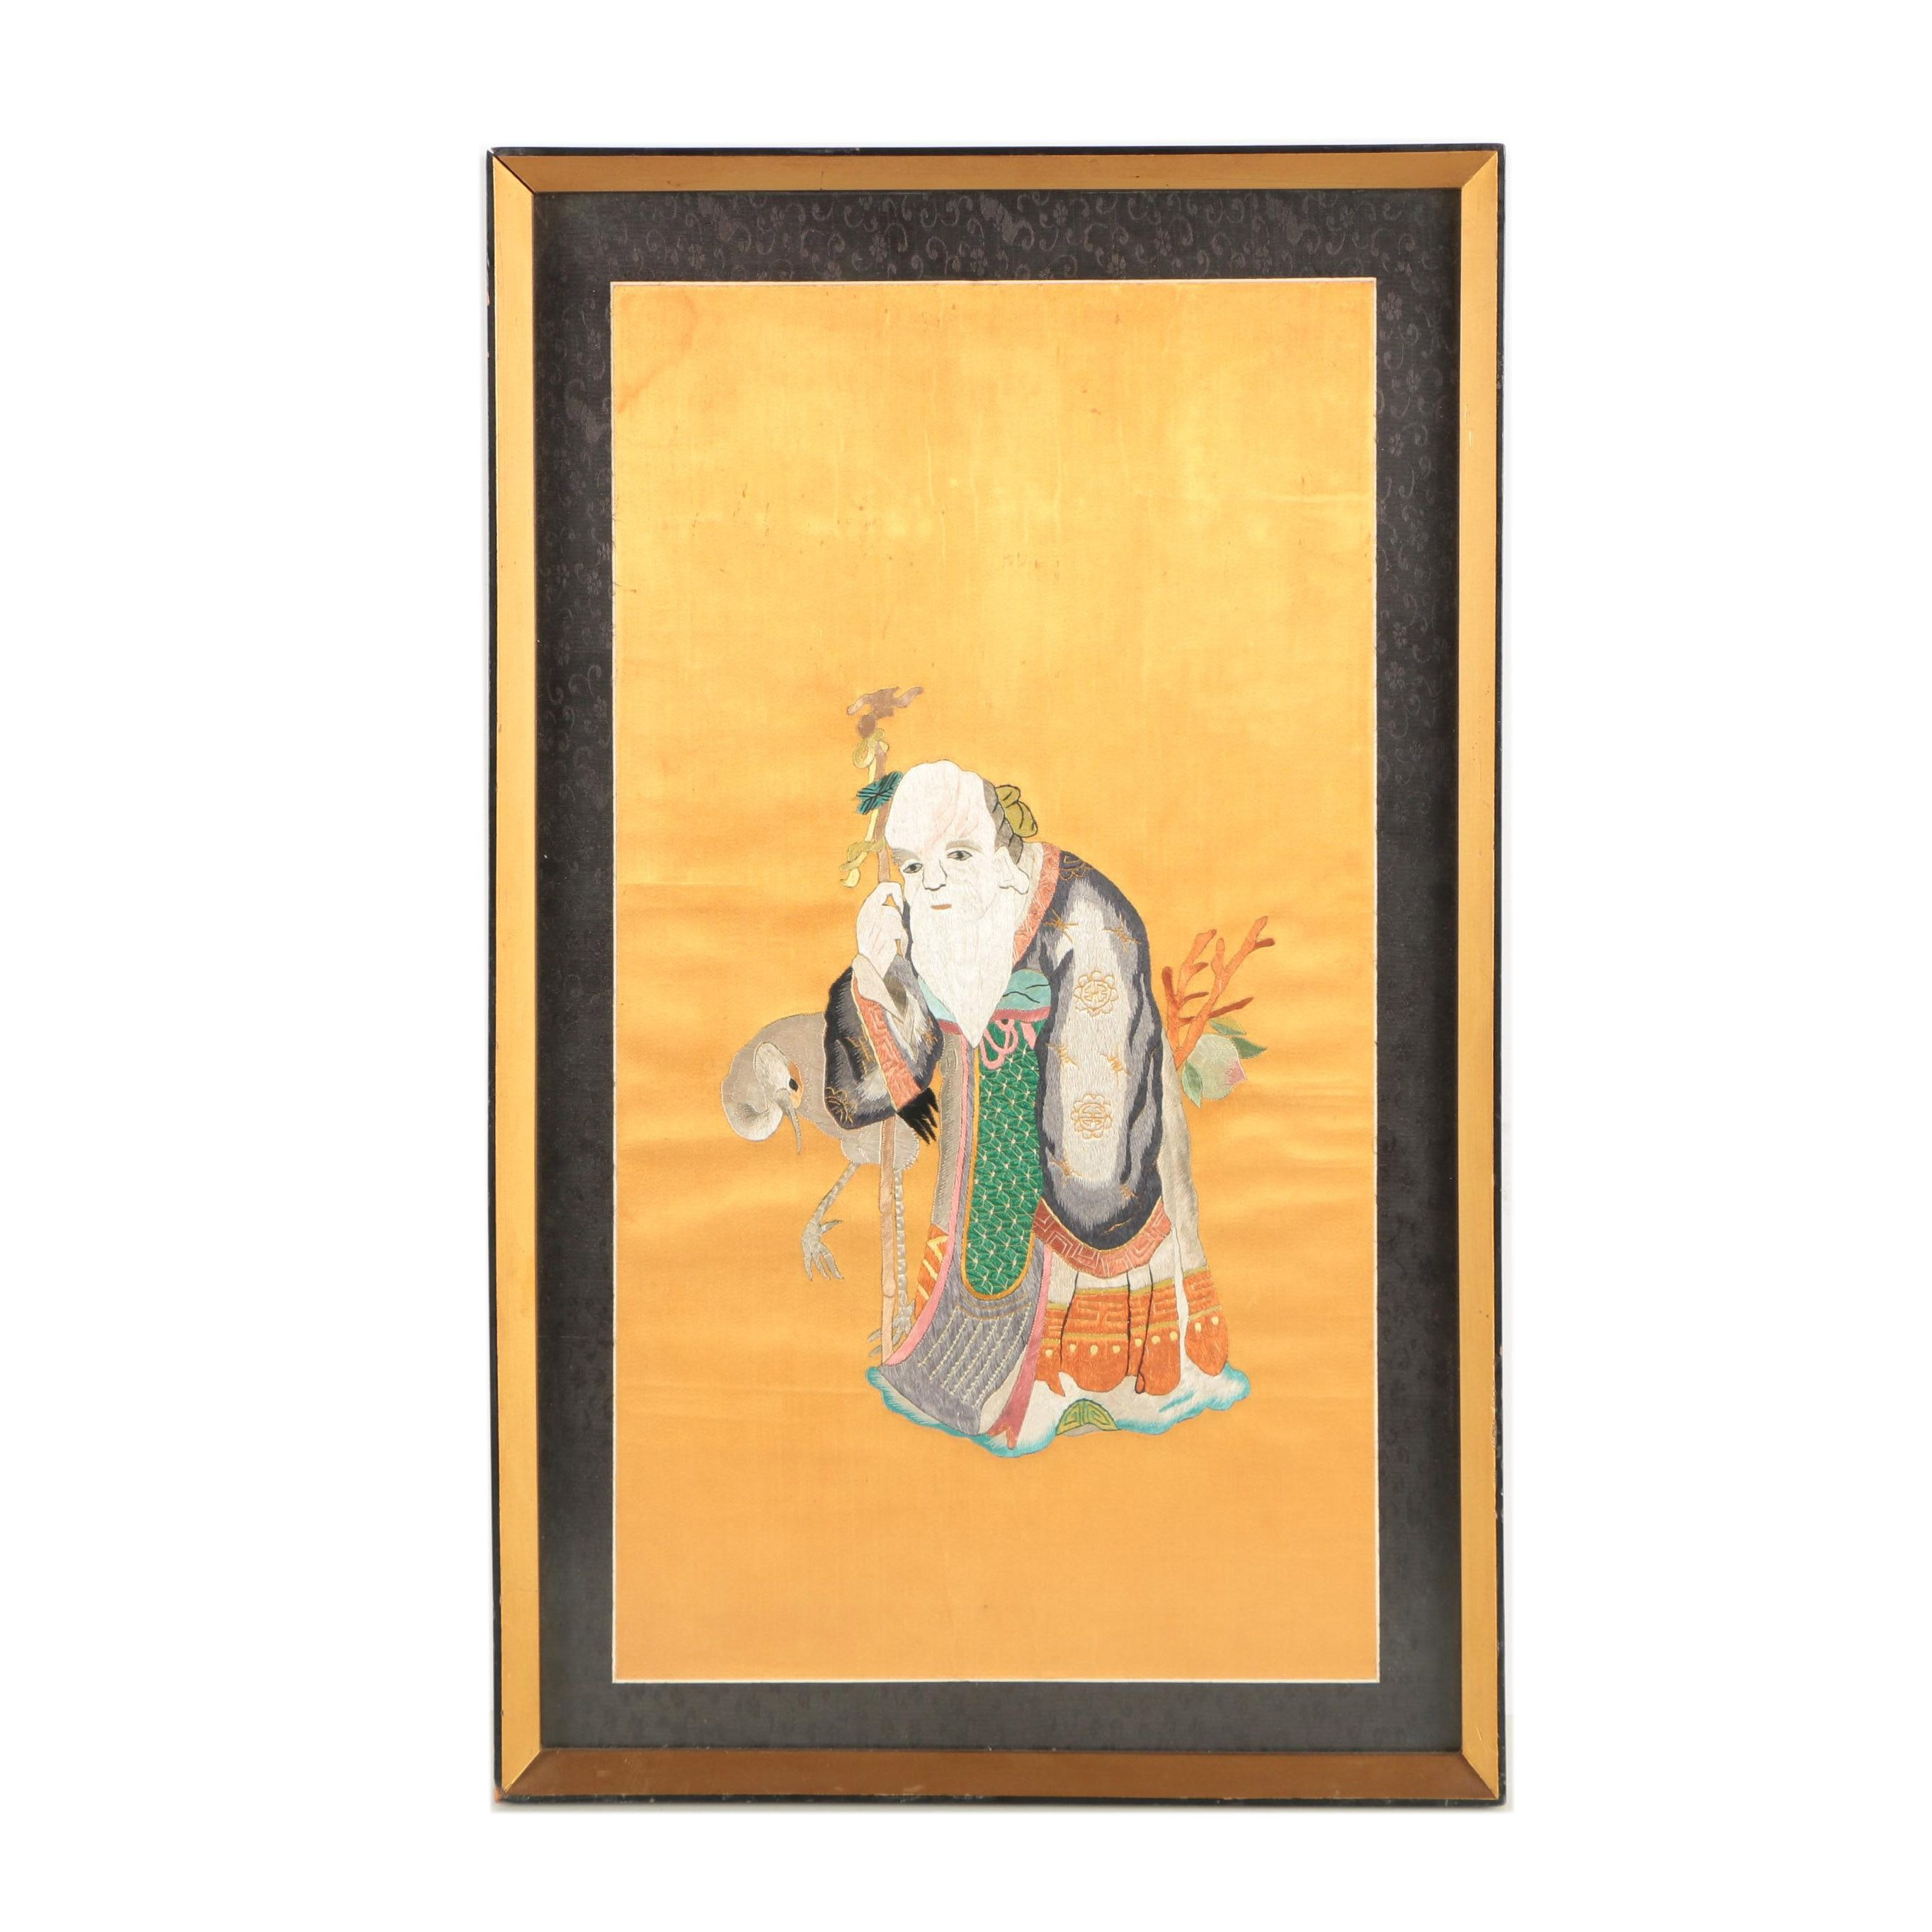 Chinese Handmade Silk Embroidery of the God of Longevity with a Crane